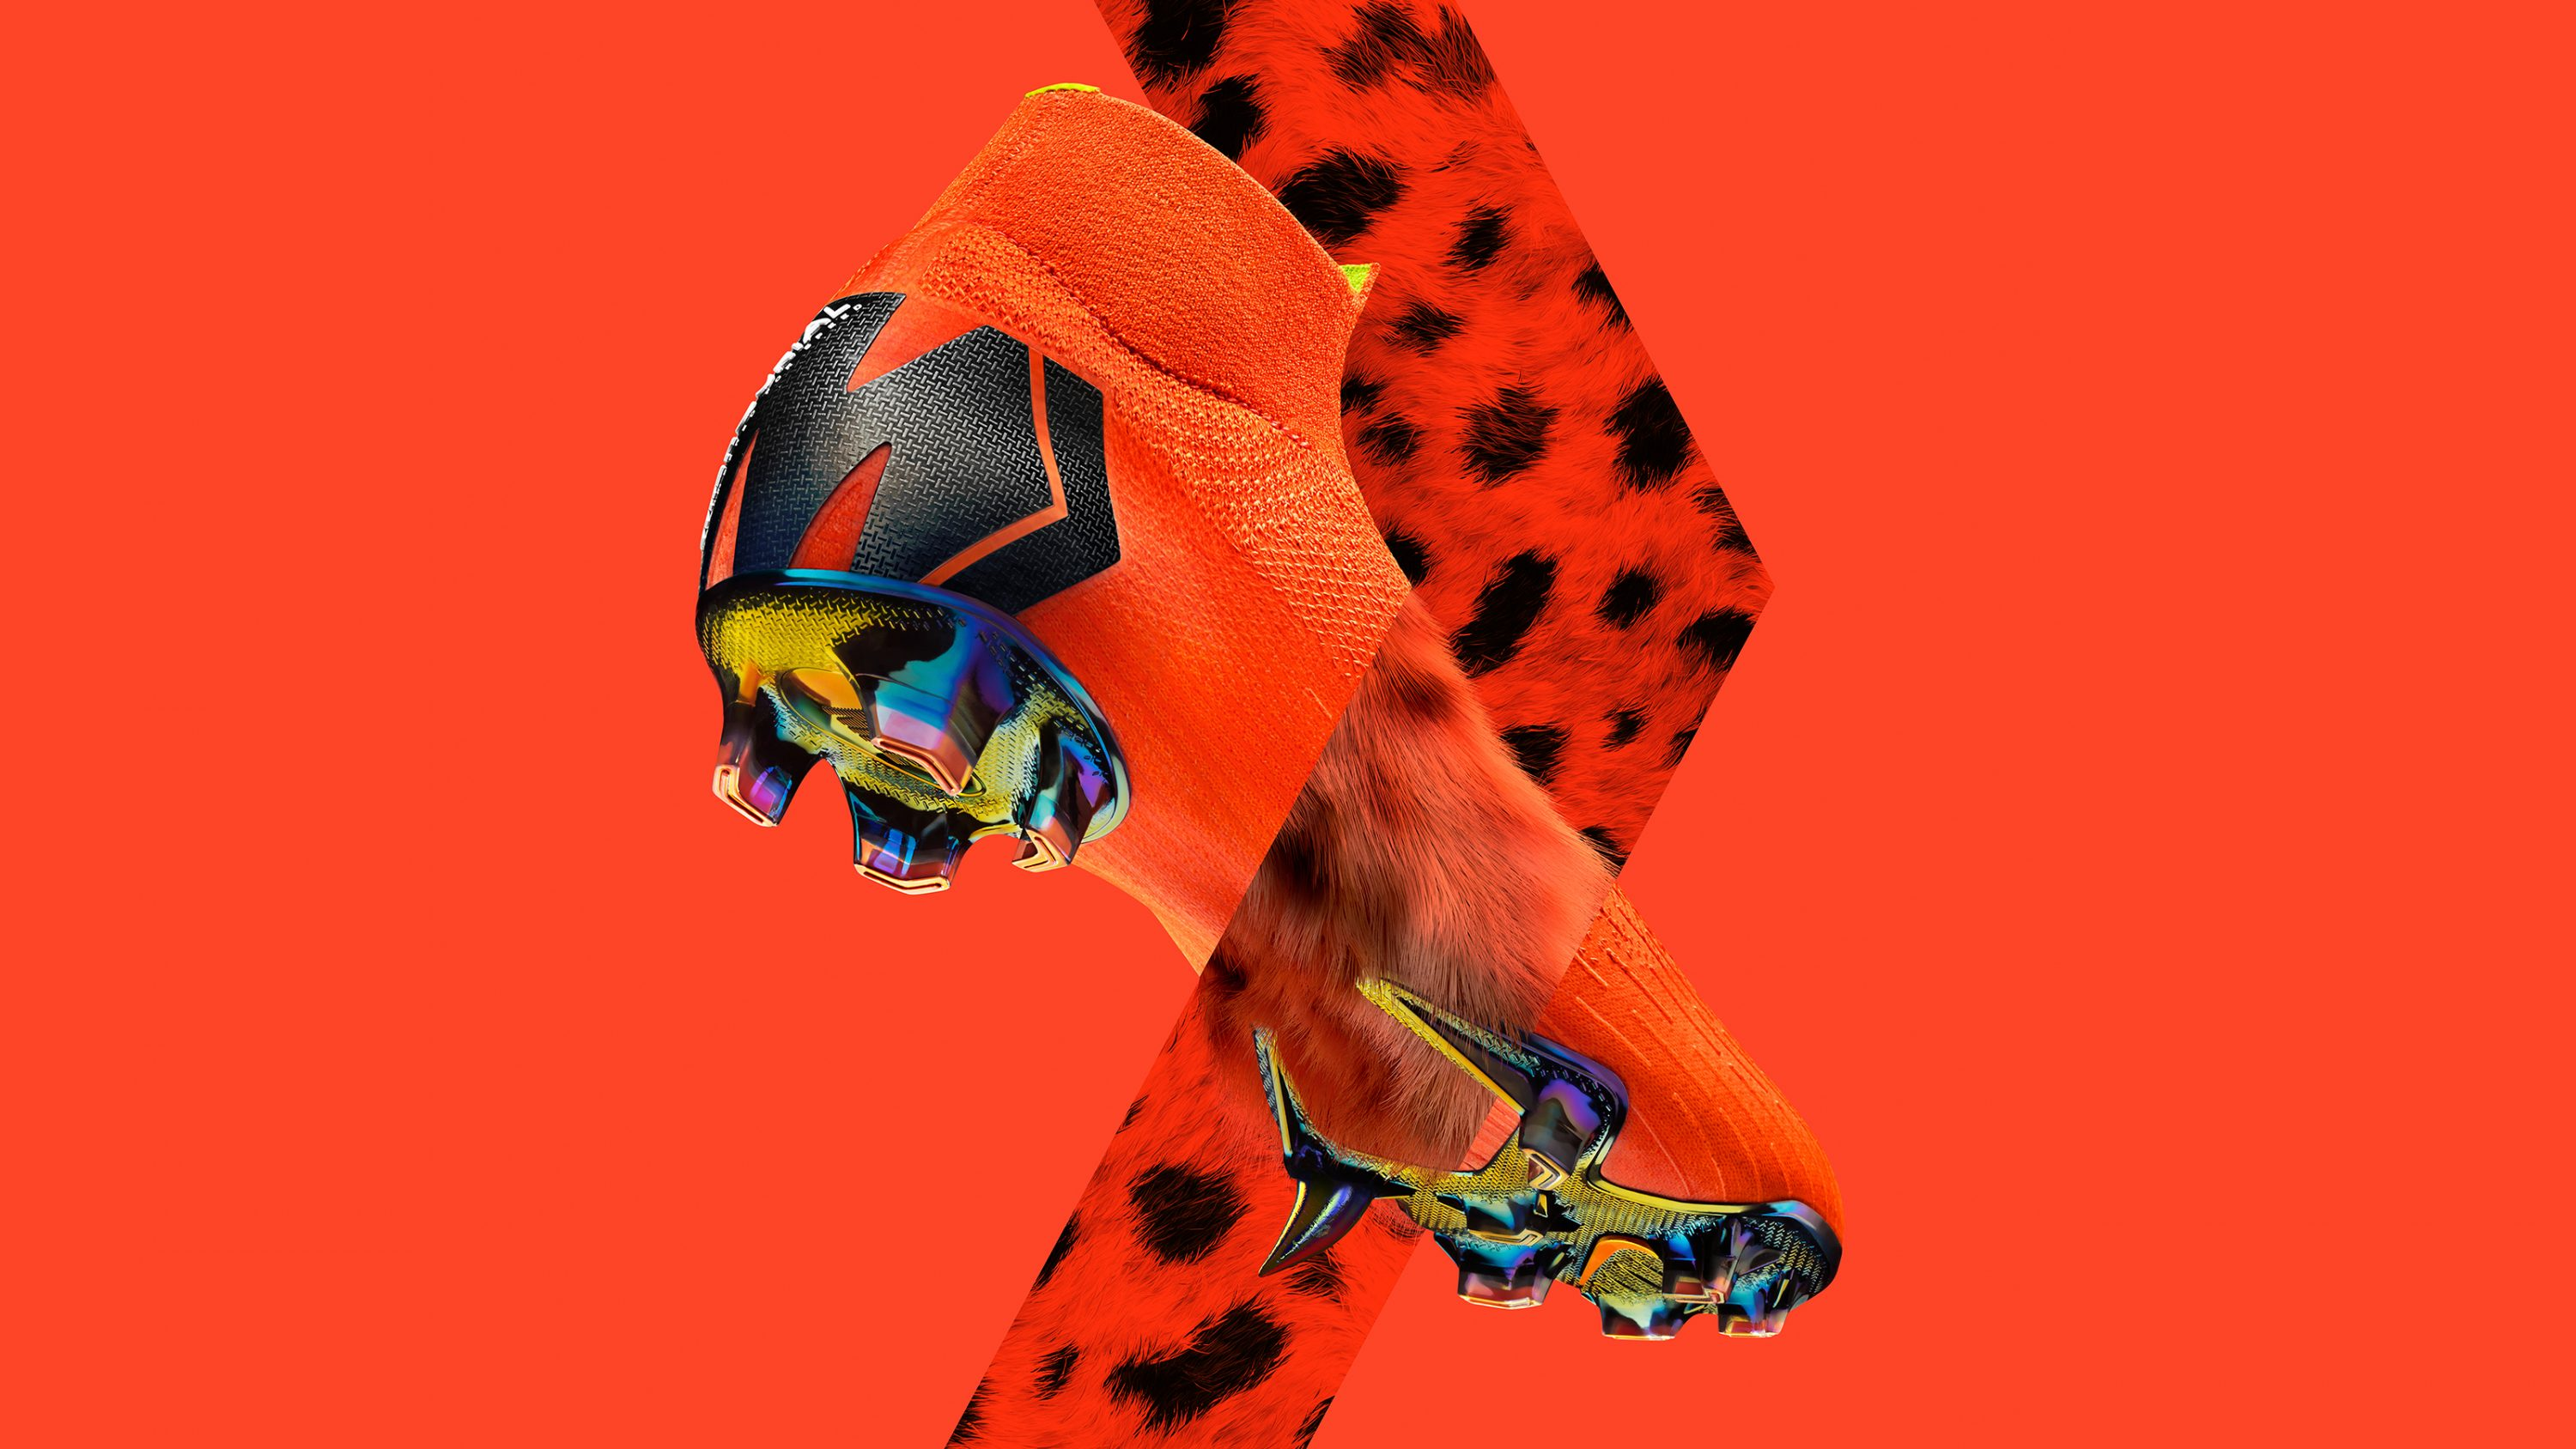 designer fashion d18e1 57877 Nike Change the Game Again with the New Mercurial Superfly 360